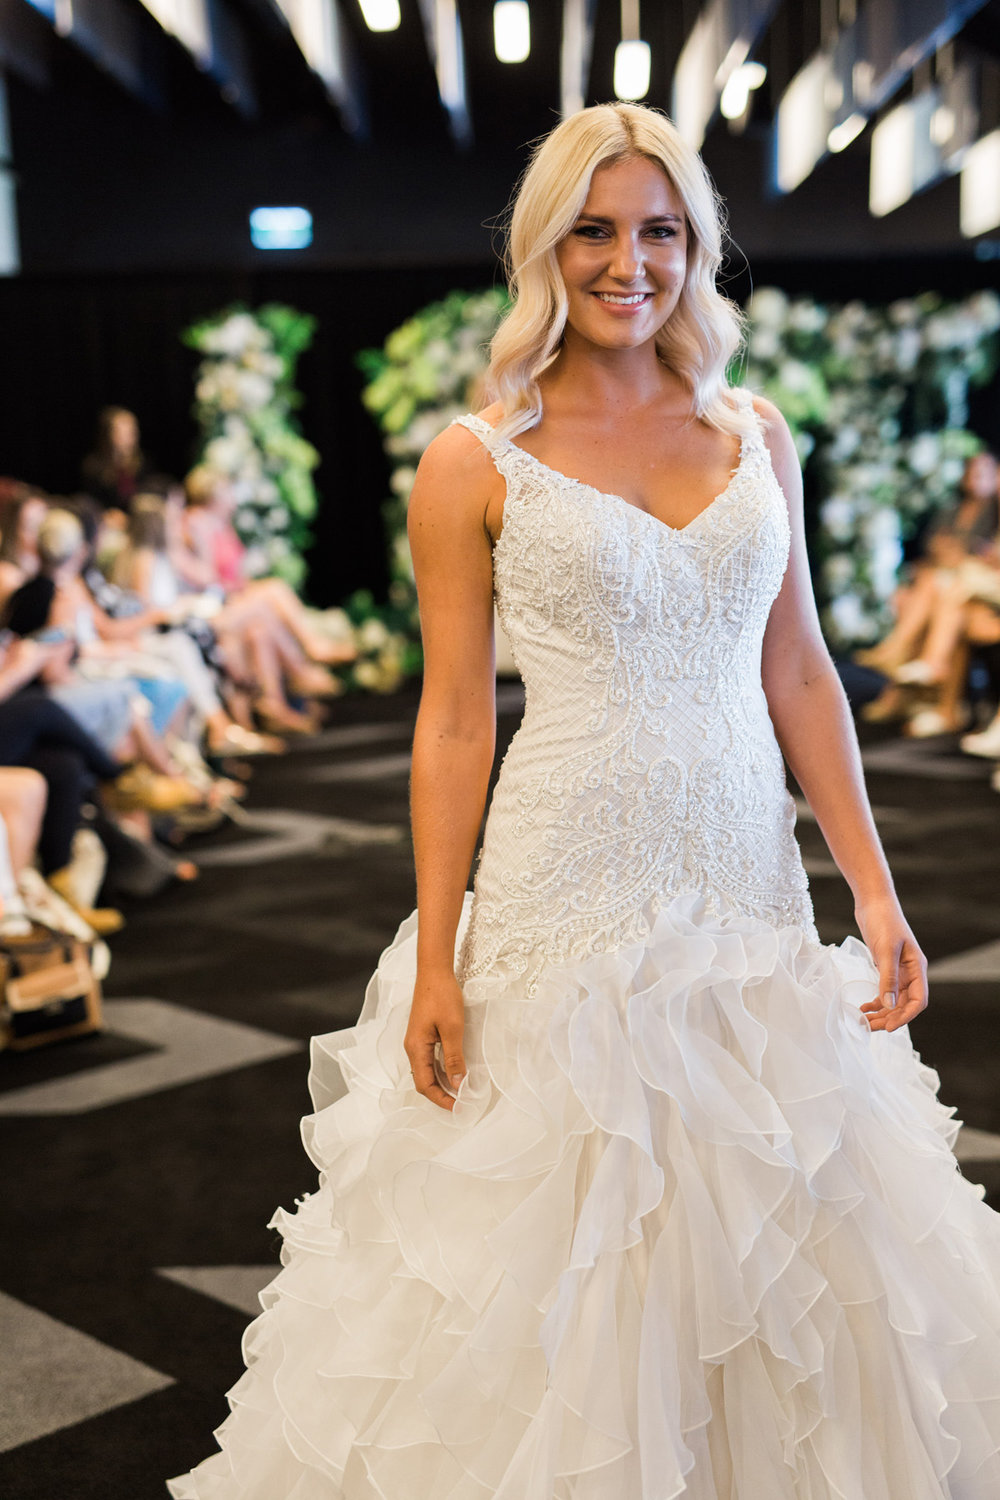 Love-Wedding-Festival-Sydney-Wedding-Gown-Jean-Fox-Bridal-4.jpg